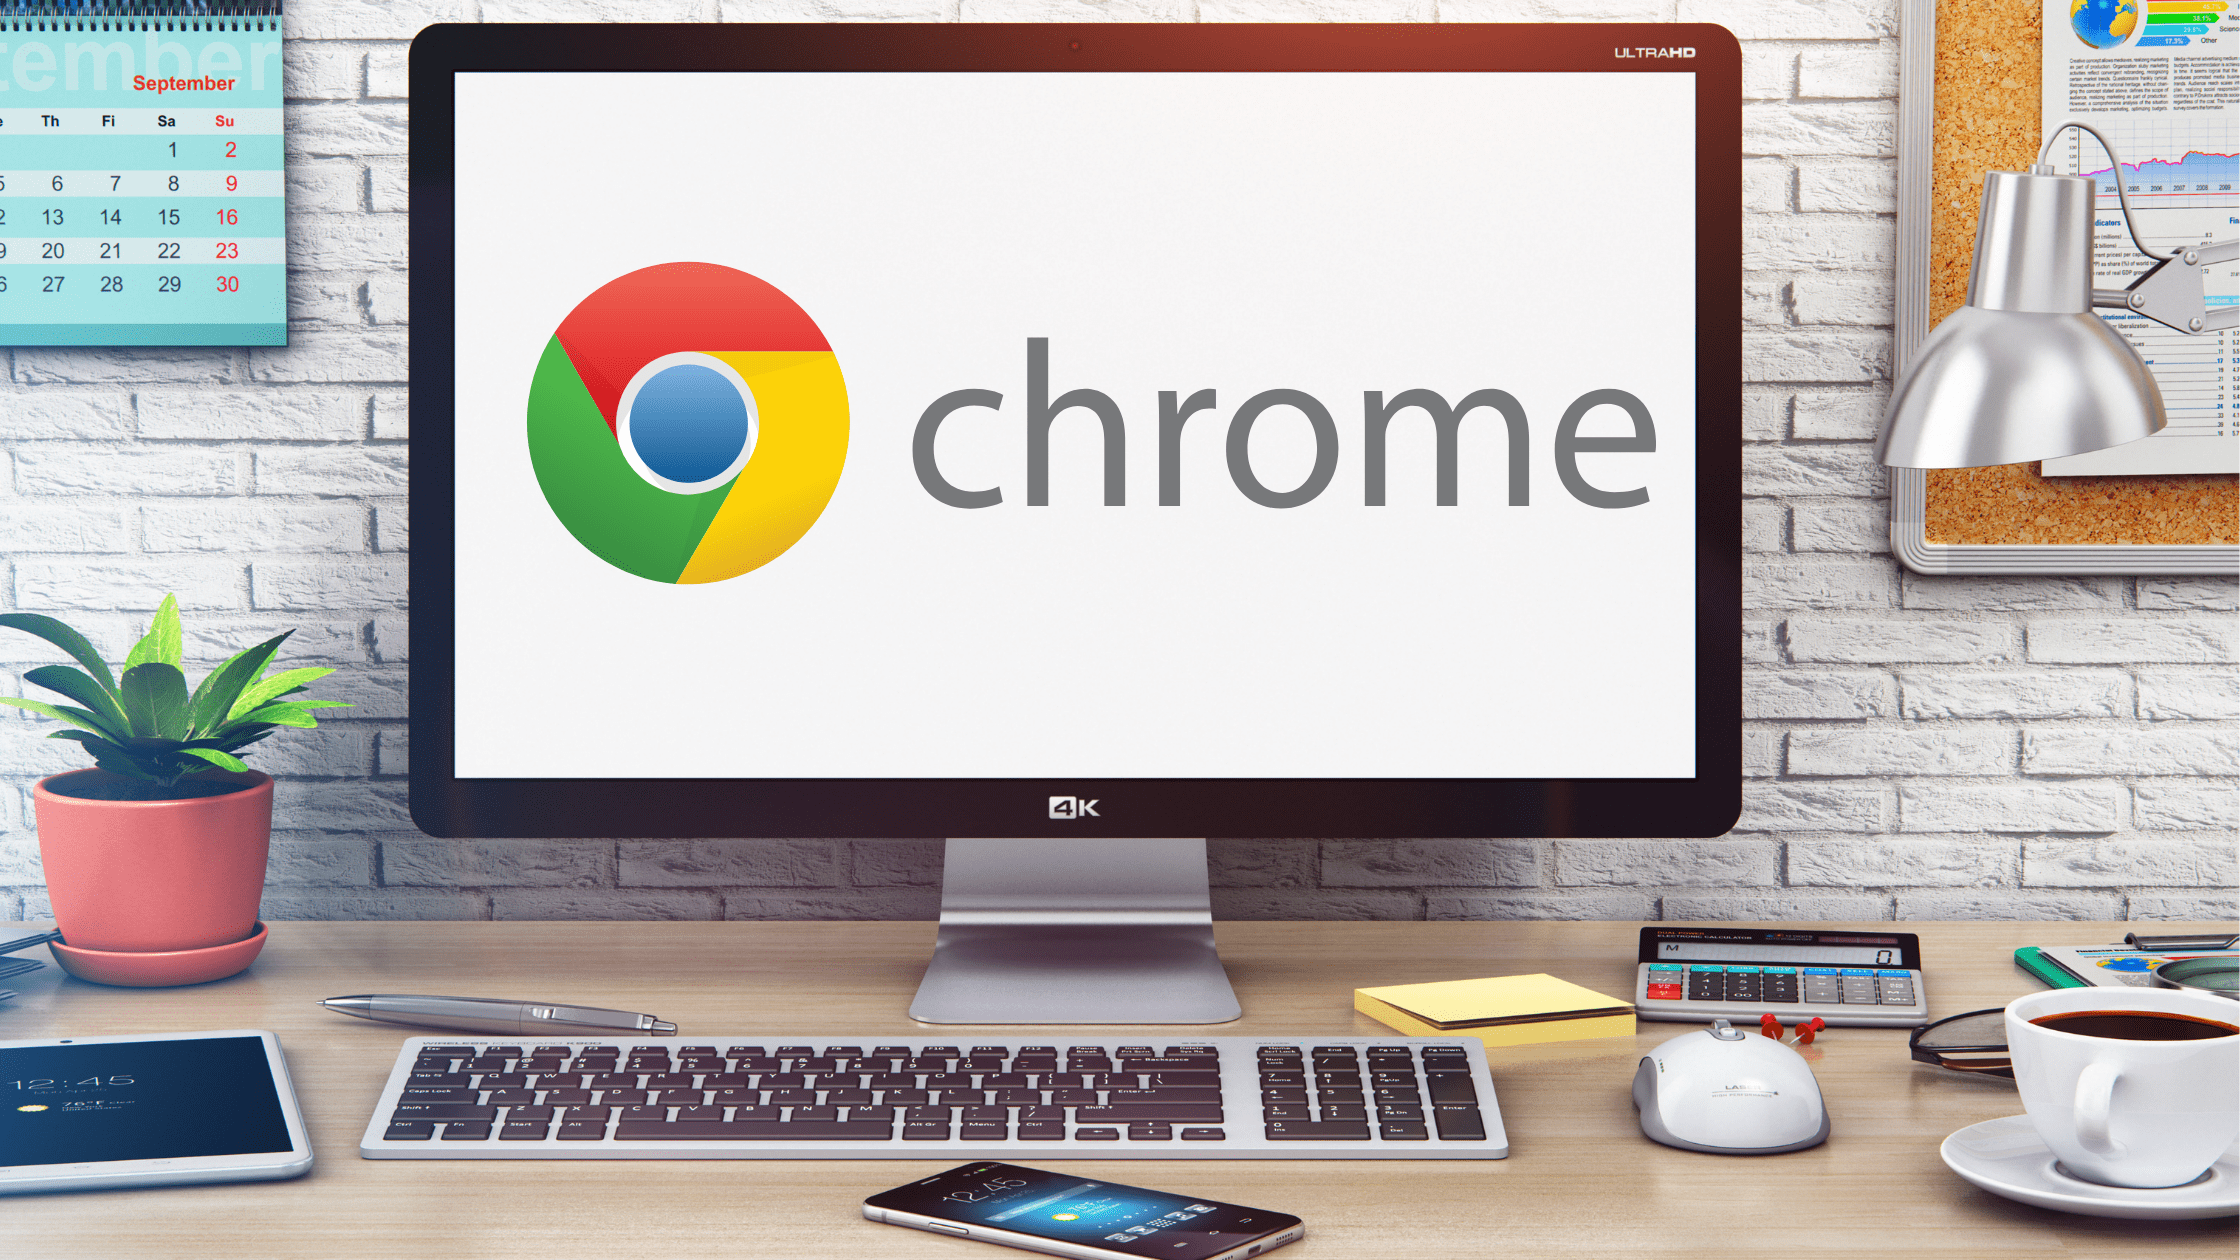 Which is the best browser between Chrome and Chromium?